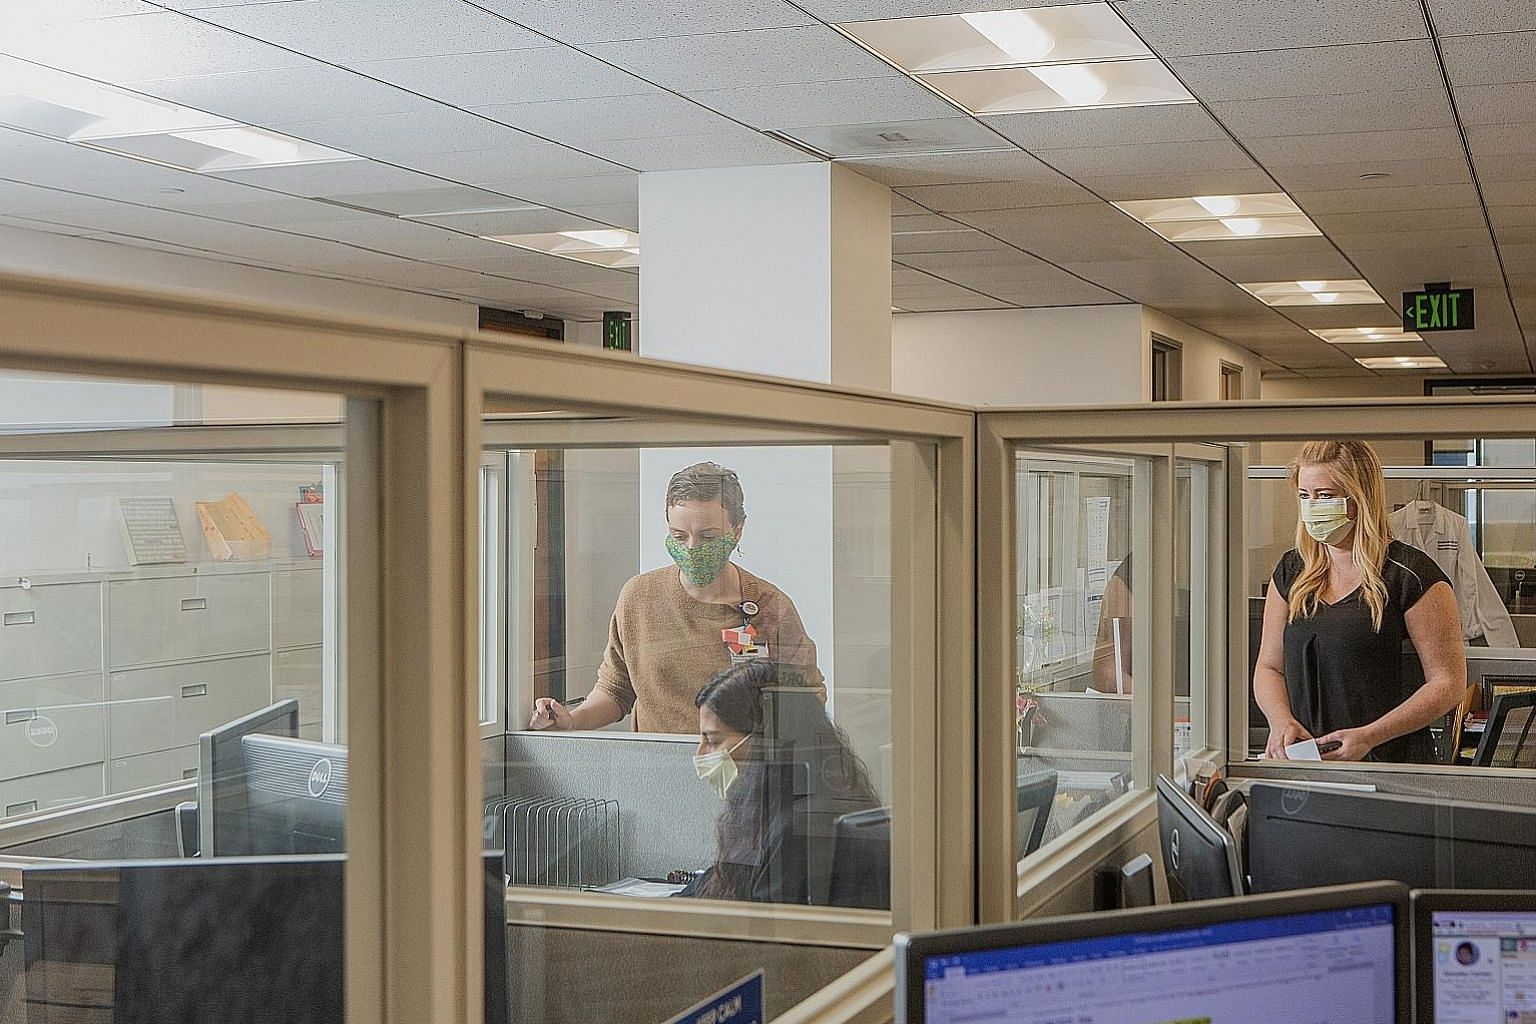 A California firm has replaced its open-plan office with protective barriers between cubicles. Kastle Systems, which designs and installs security systems for commercial buildings, has put in place a thermal camera (left) to measure temperatures and